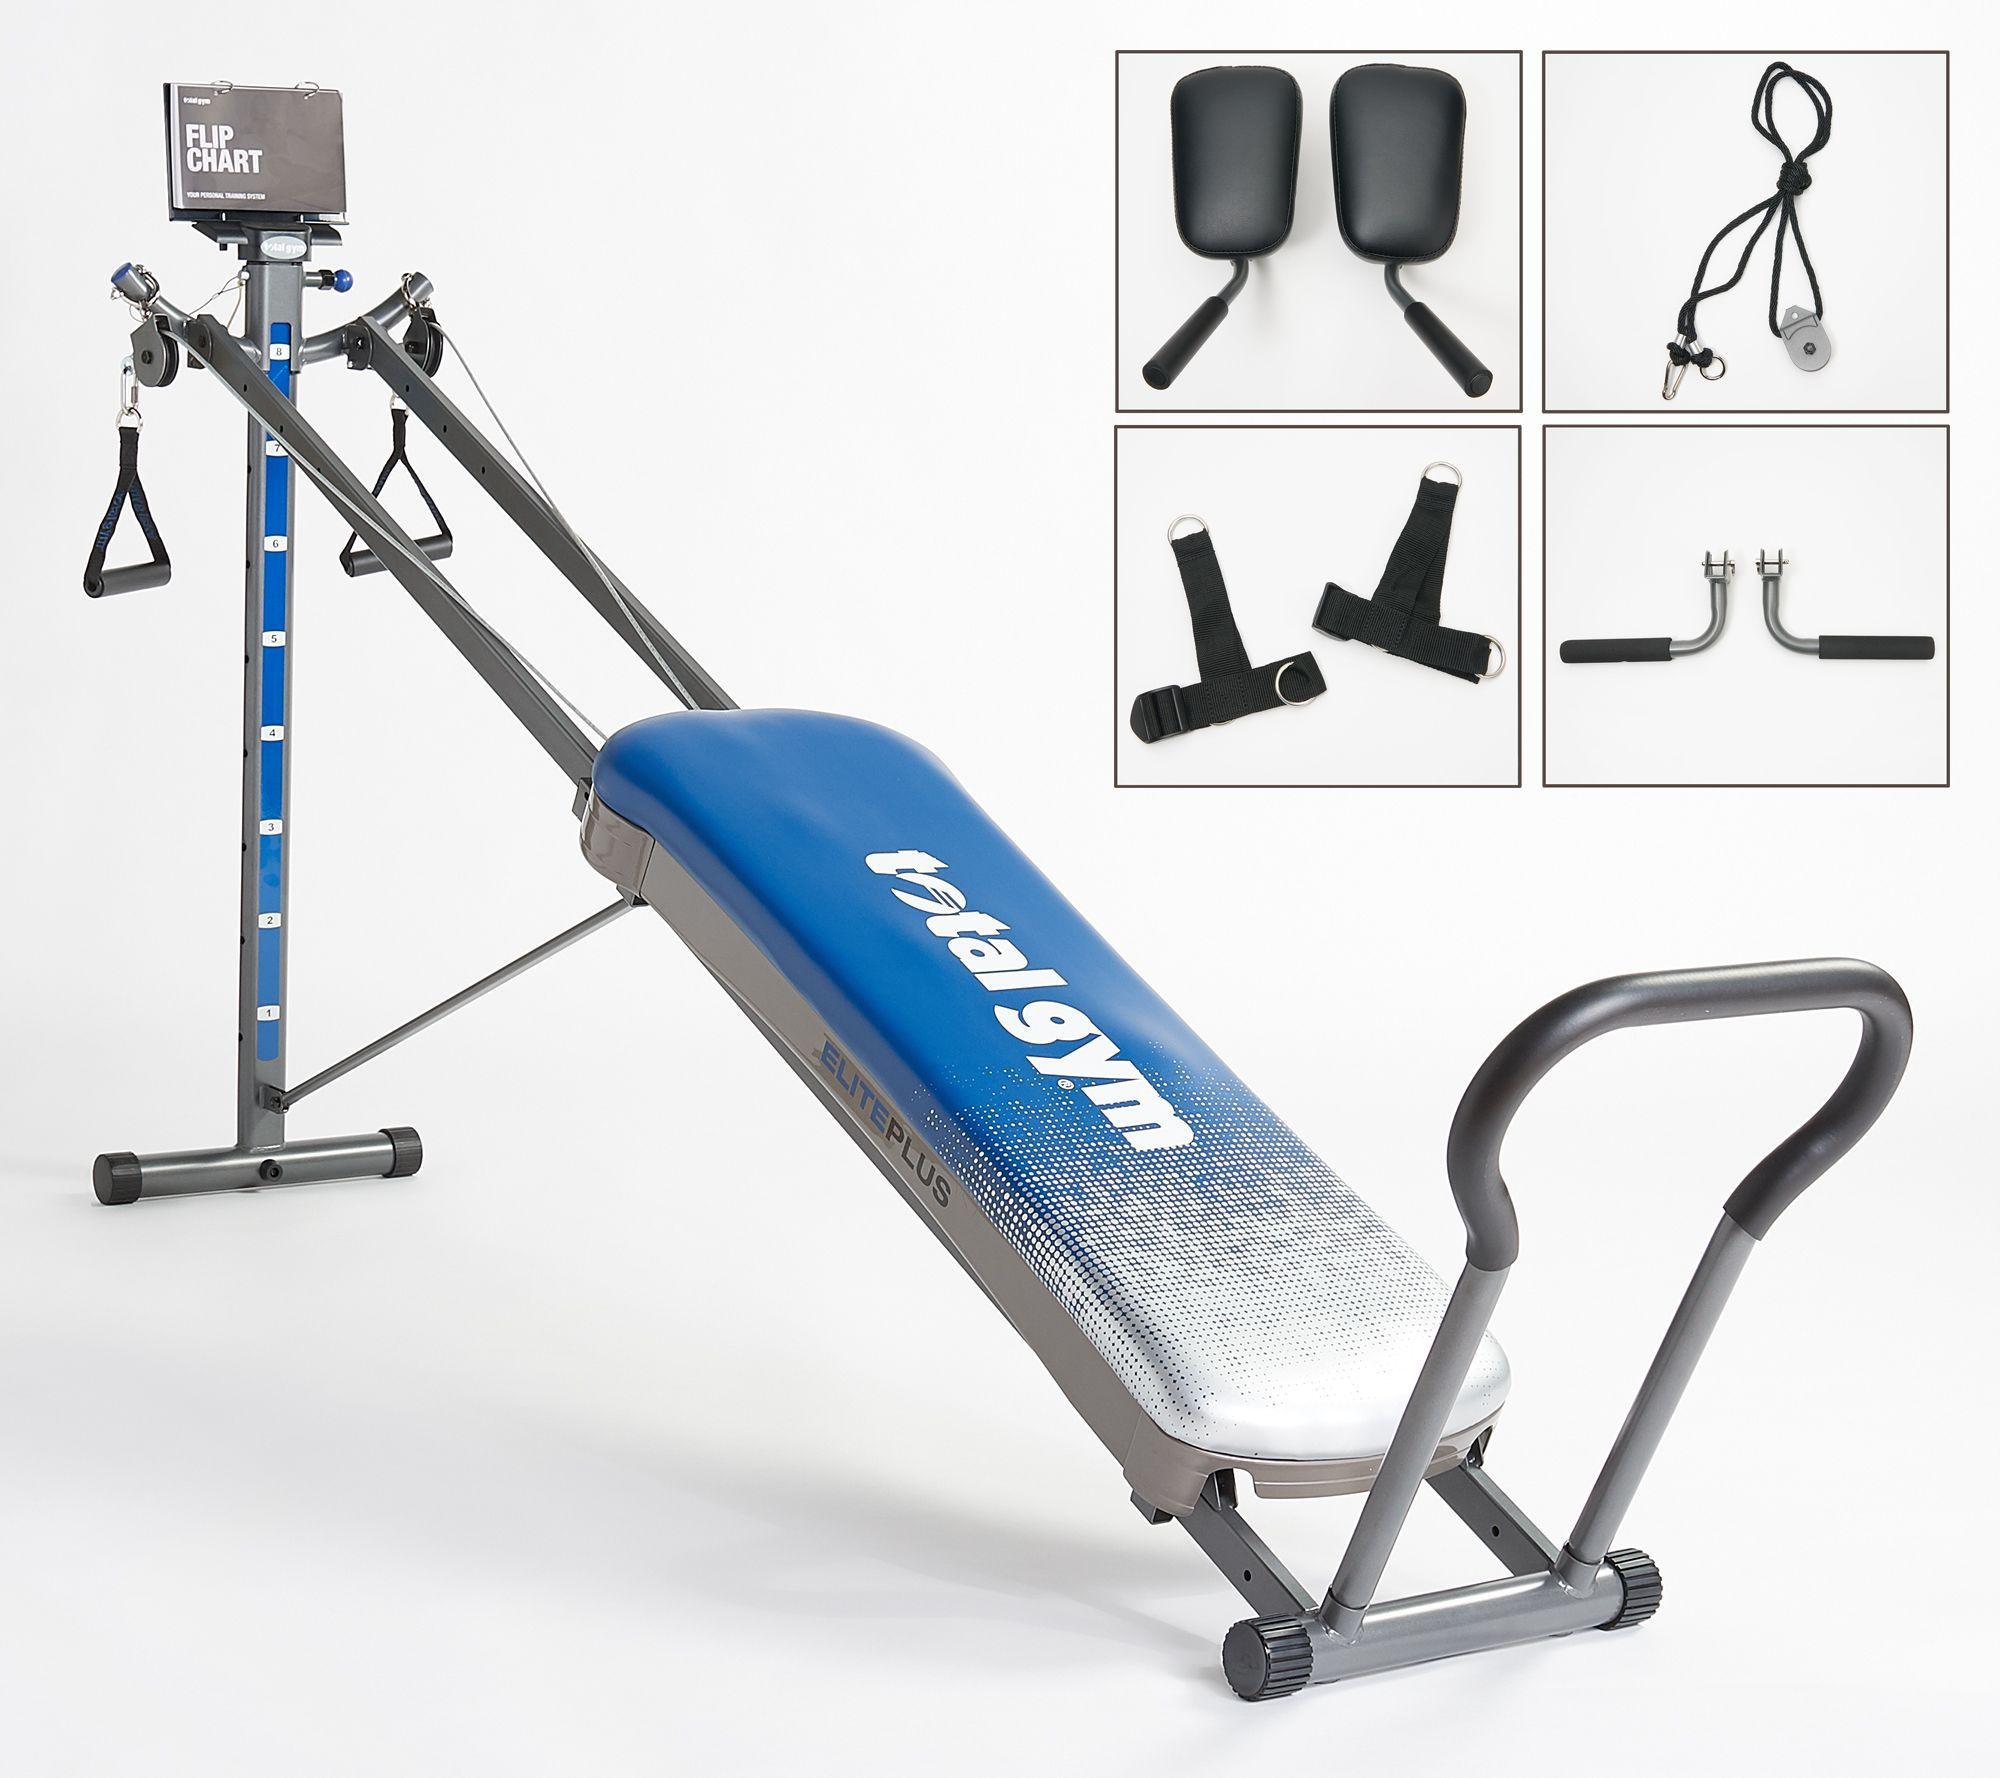 Fitness Equipment: Deal of the Day cover image